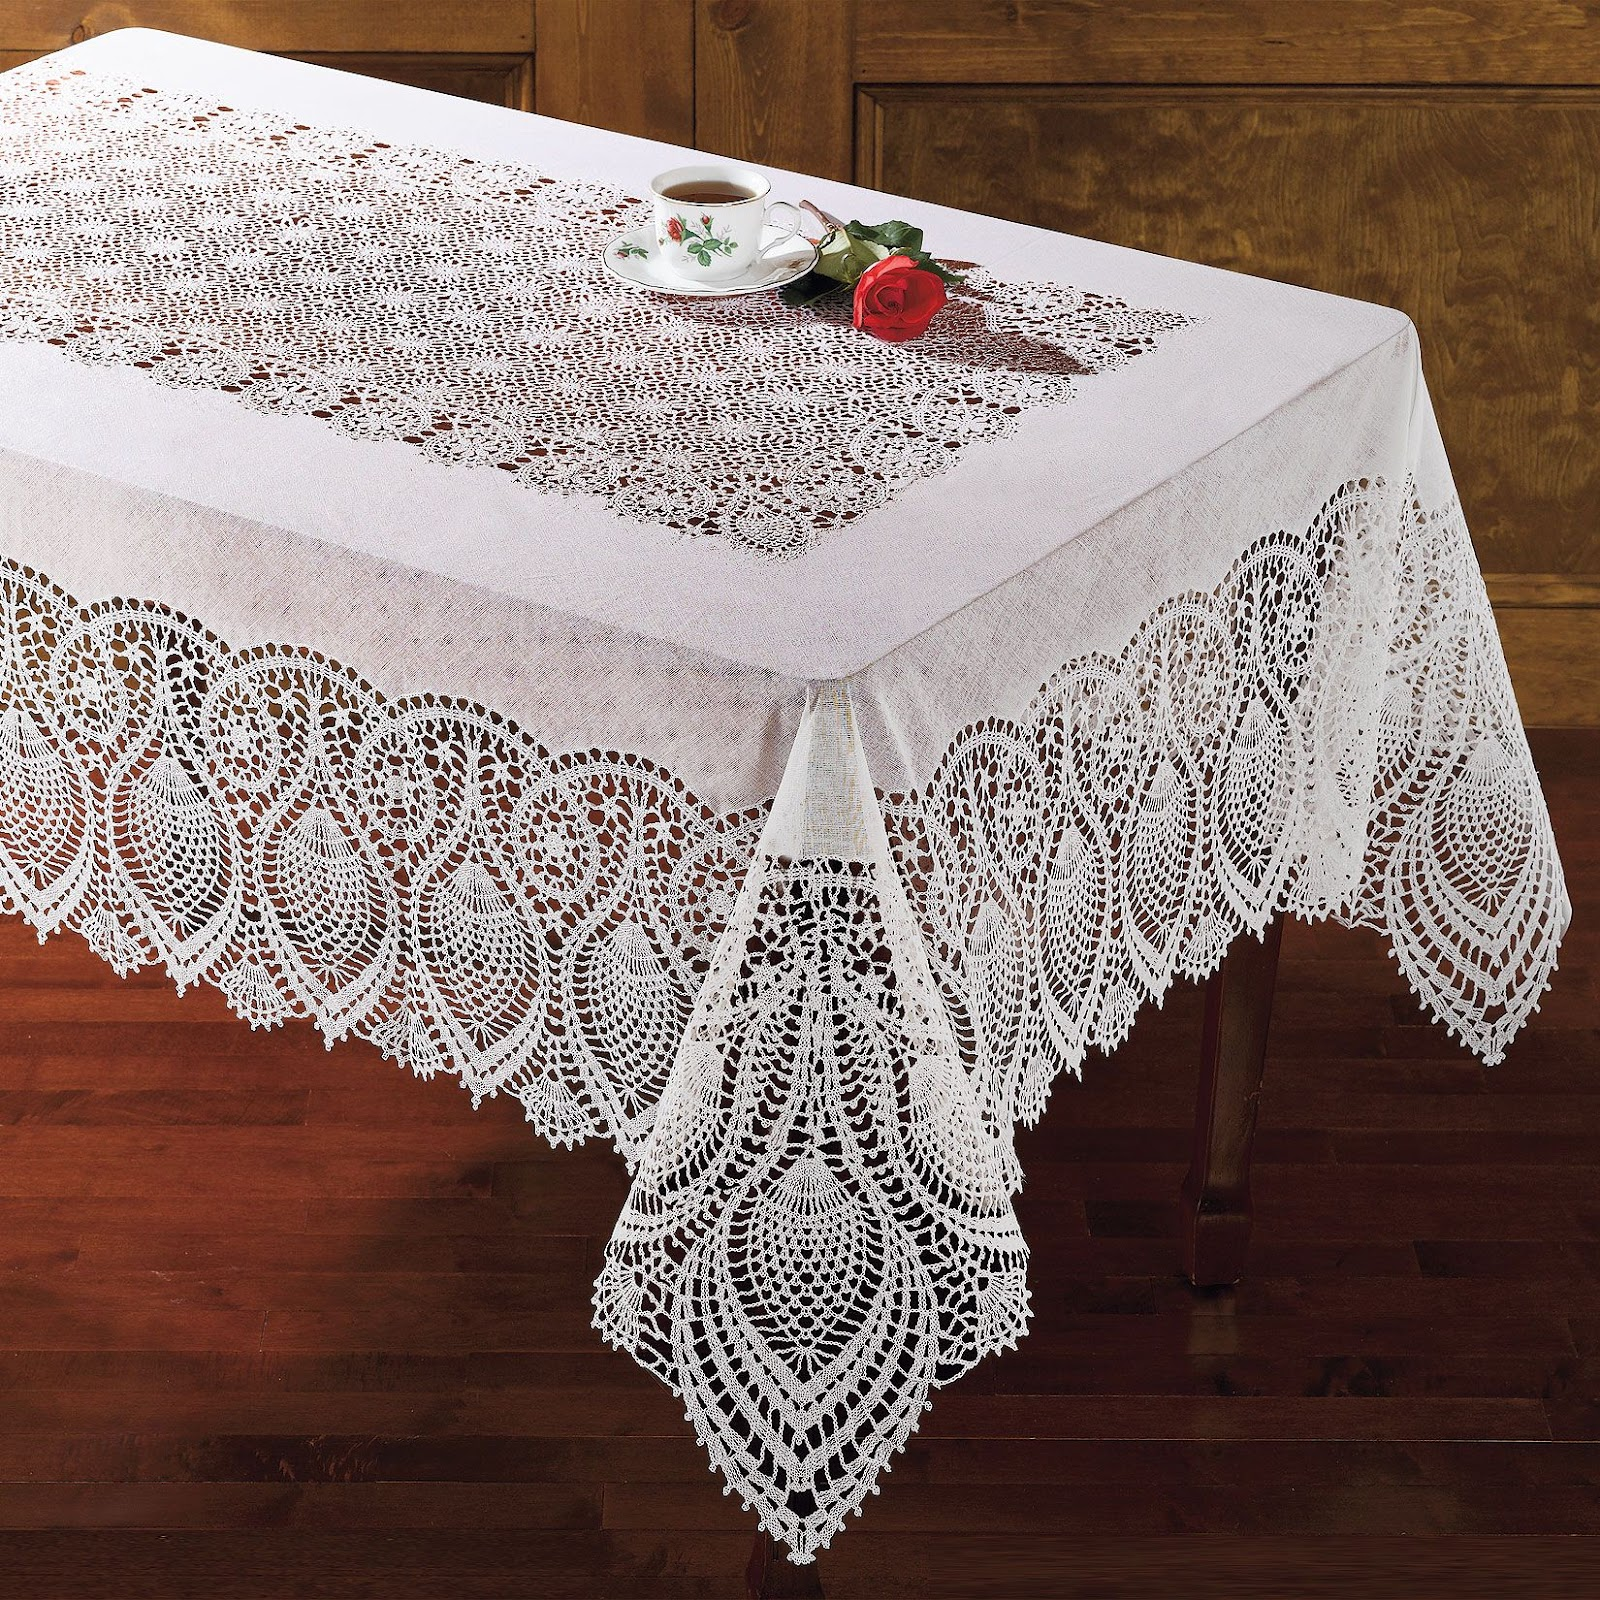 Dr House Cleaning How To Clean A Lace Tablecloth